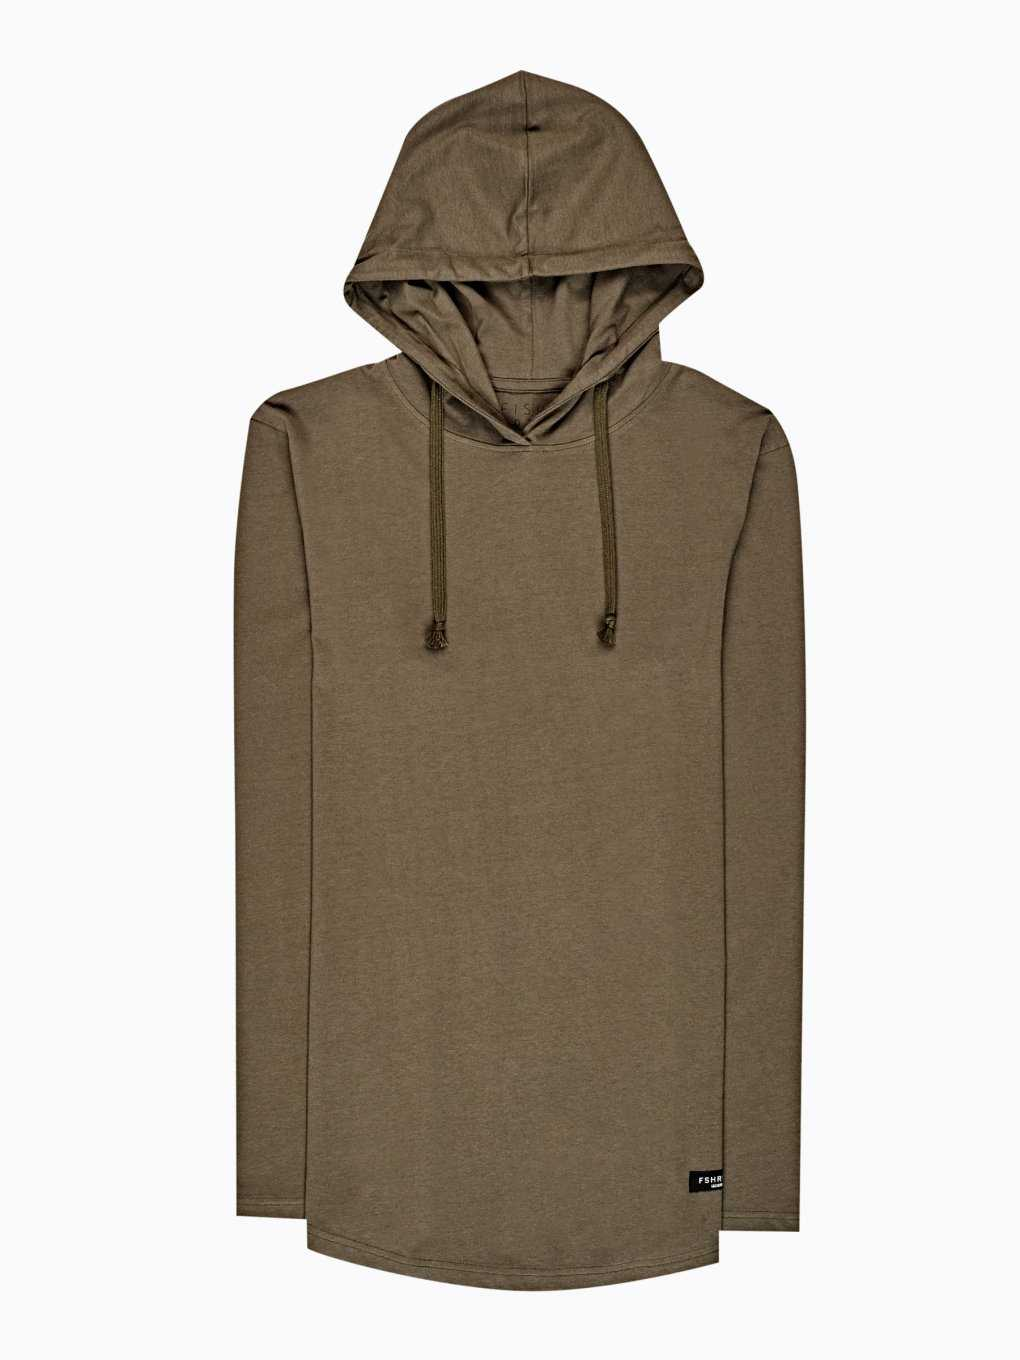 Hooded t-shirt with zippers